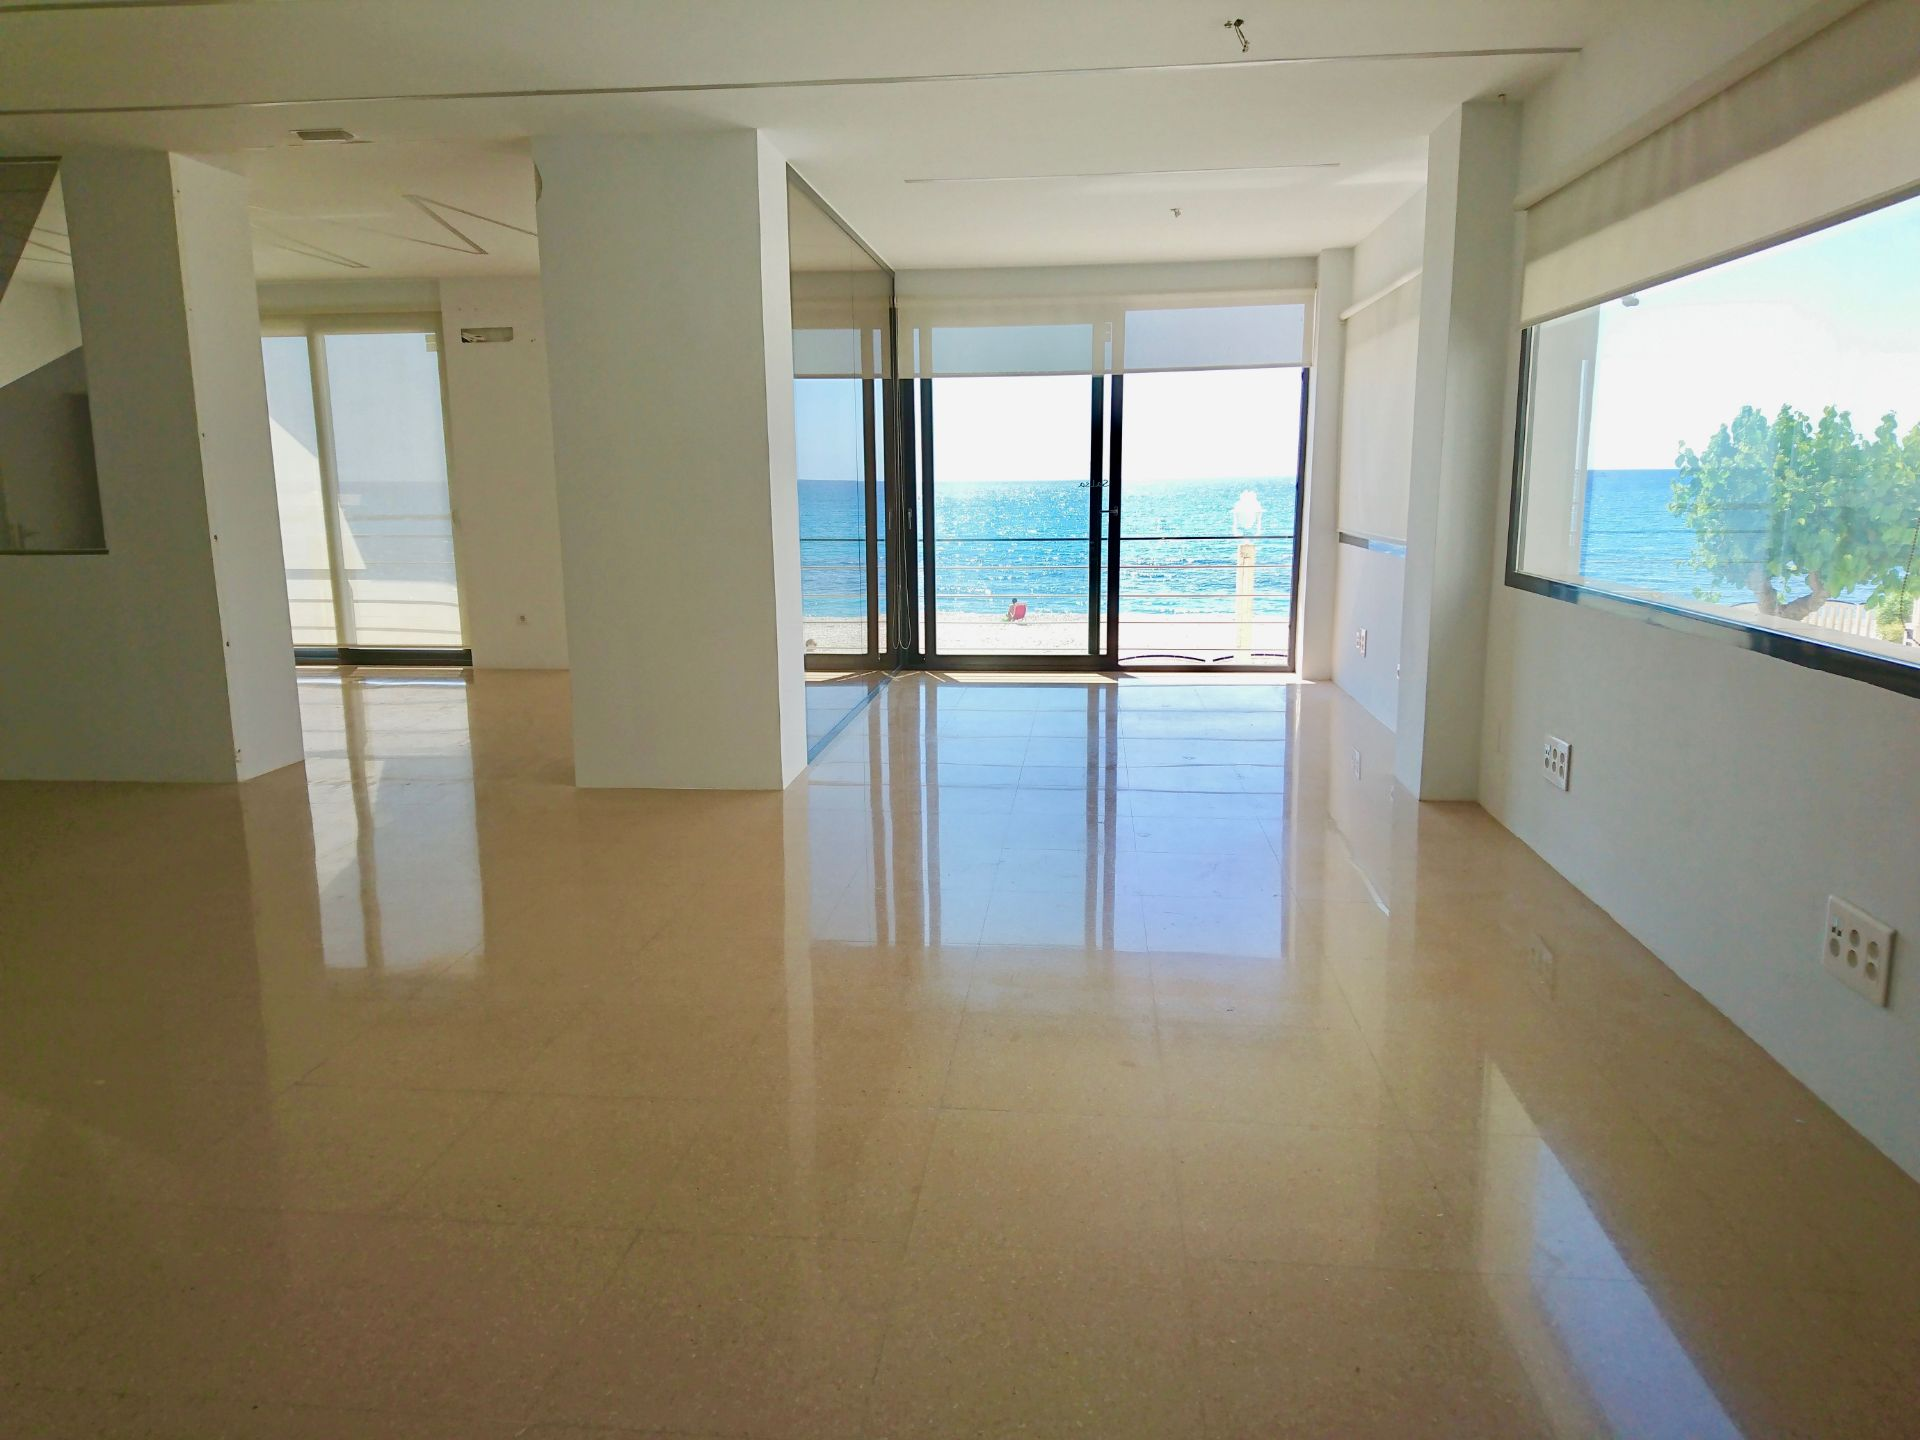 Local comercial en Altea, Paseo Maritimo, venta